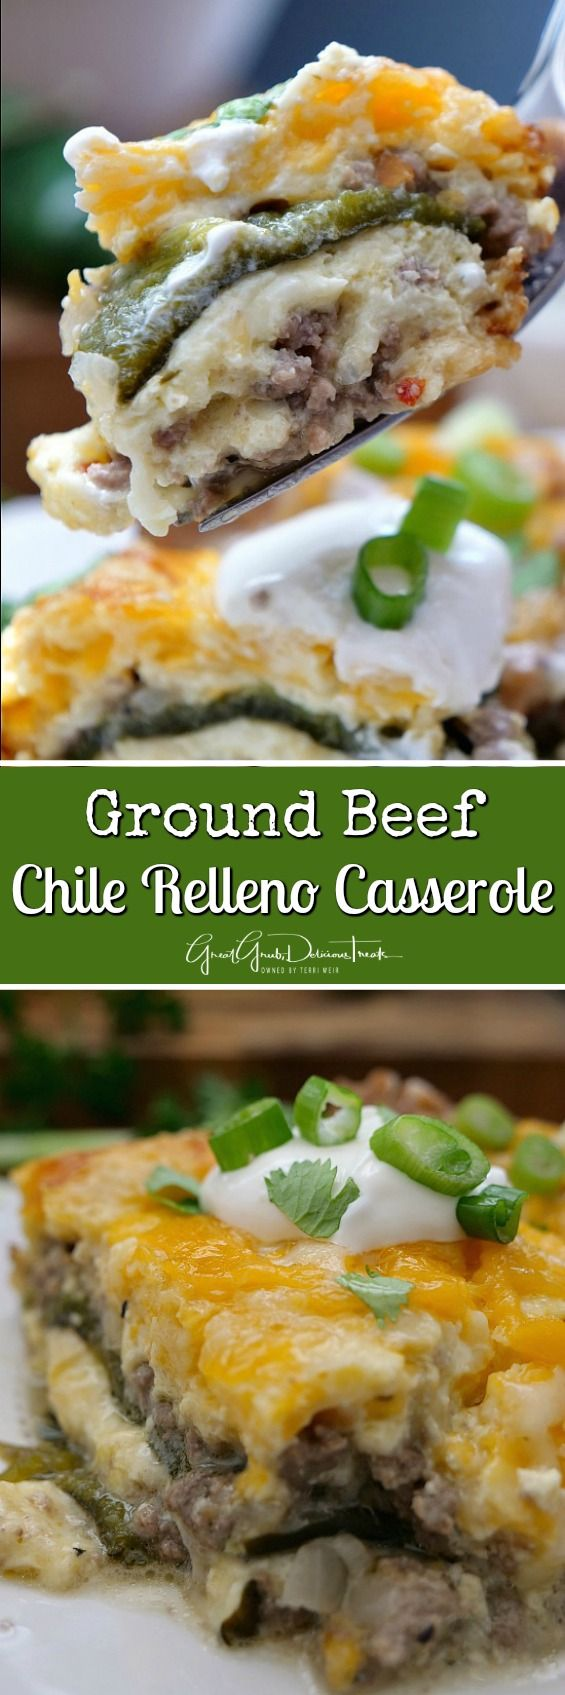 Ground Beef Chile Relleno Casserole a delicious Mexican food recipe loaded with cheese, oven roasted Poblano peppers and seasoned ground beef.